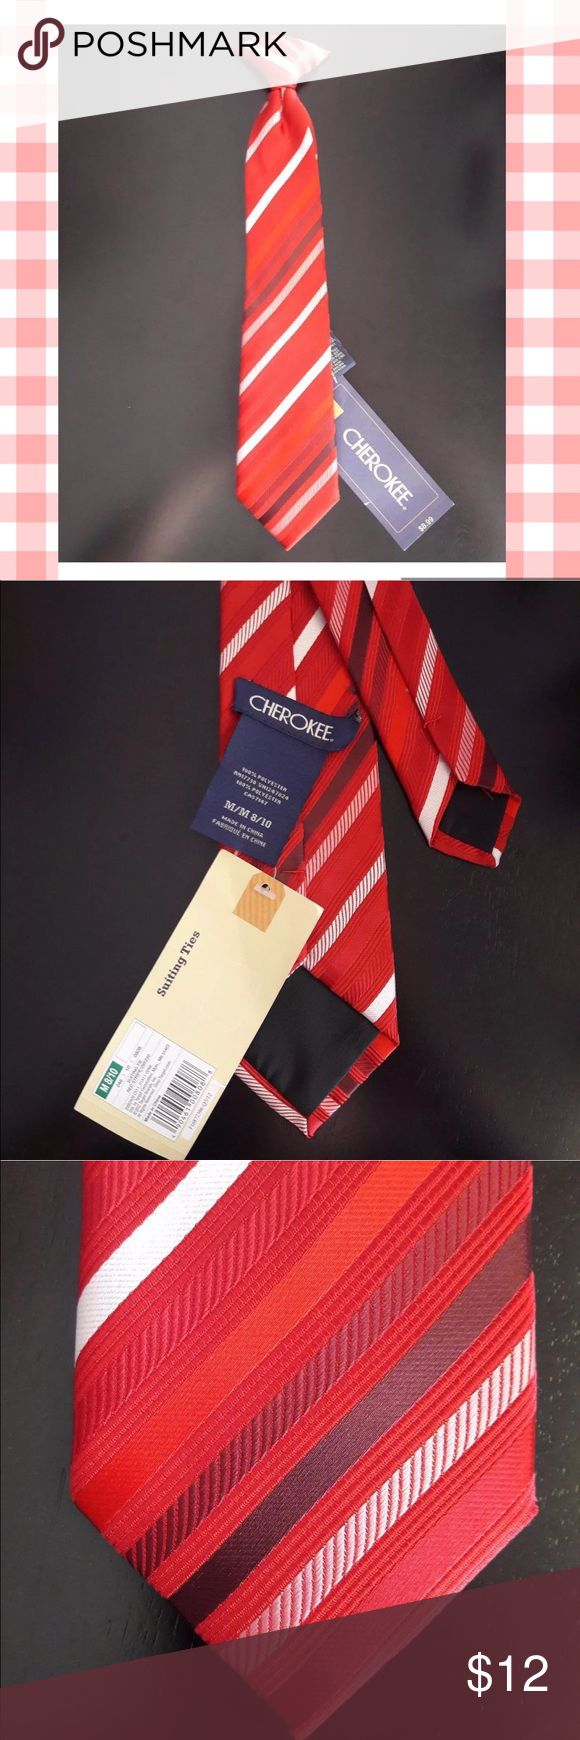 """Striped Clip On Tie Cherokee KIds's Necktie  No flaws.  Approx. Measurements:  13.75"""" x 2.75""""   Please, review pictures. You will get the item shown. Smoke & pet free home. Cherokee Accessories Ties"""